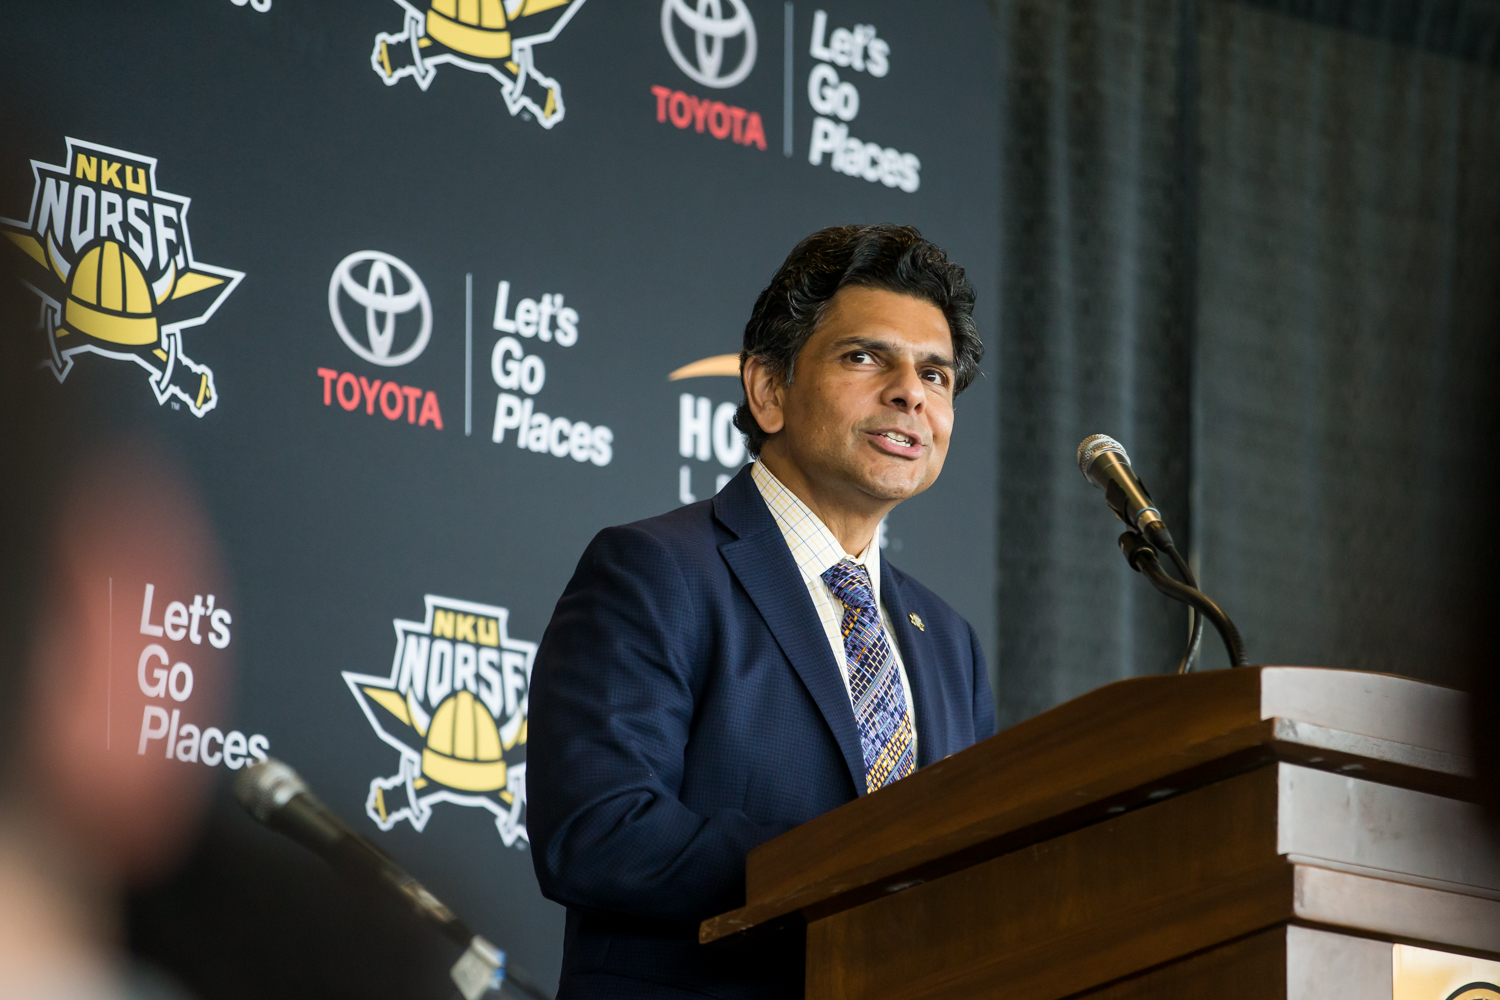 NKU+President+Ashish+Vaidya+gives+his+remarks+during+the+press+conference+for+the+welcoming+of+the+new+Men%27s+Basketball+Head+Coach+Darrin+Horn.